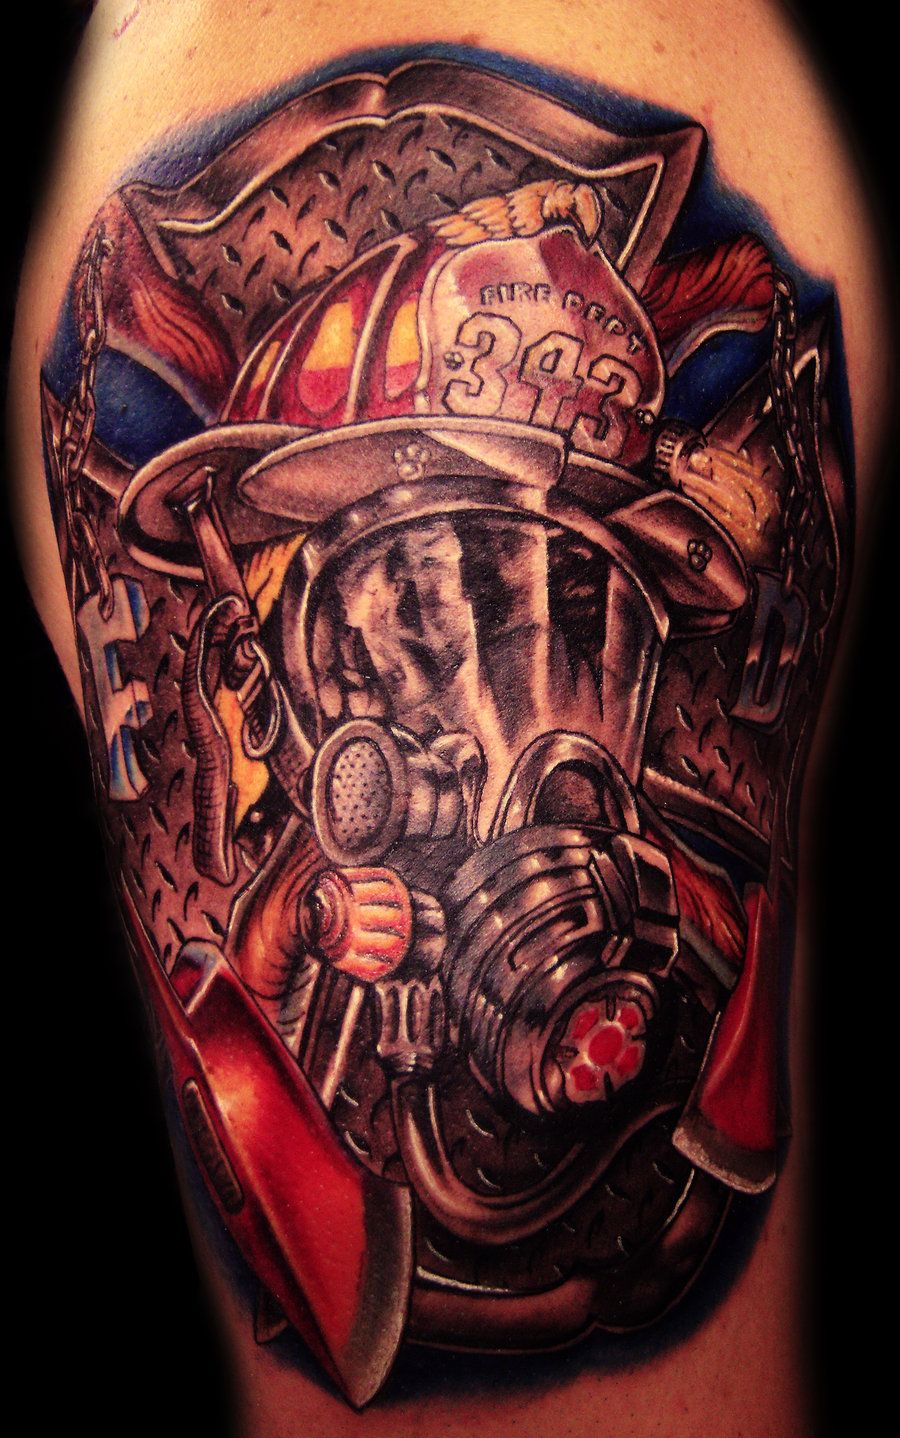 Firefighter Tattoo I Would Only Get One For My Brother And Cousin with regard to dimensions 900 X 1438